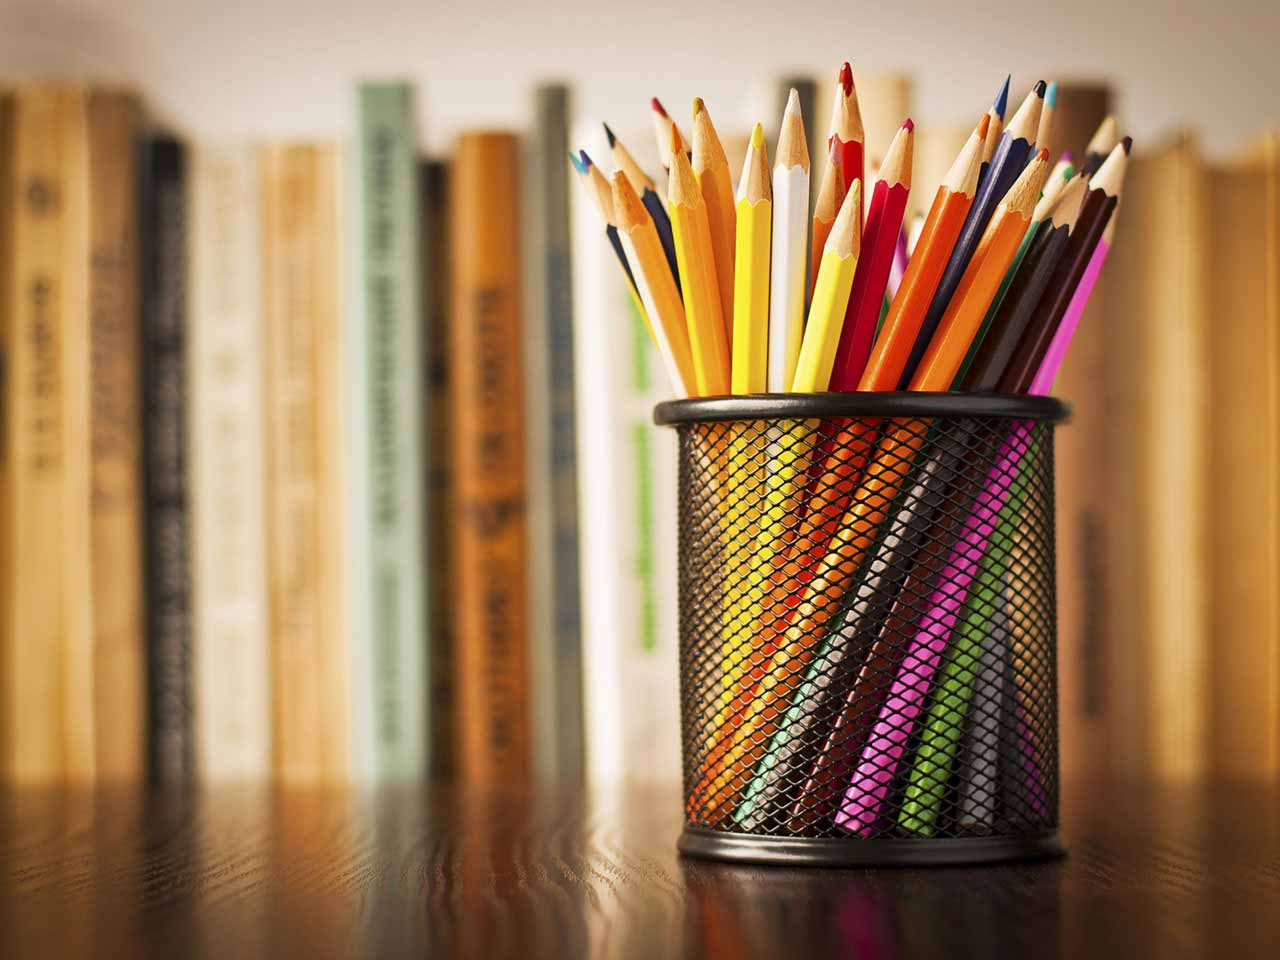 Pencil pot tidy and books on desk